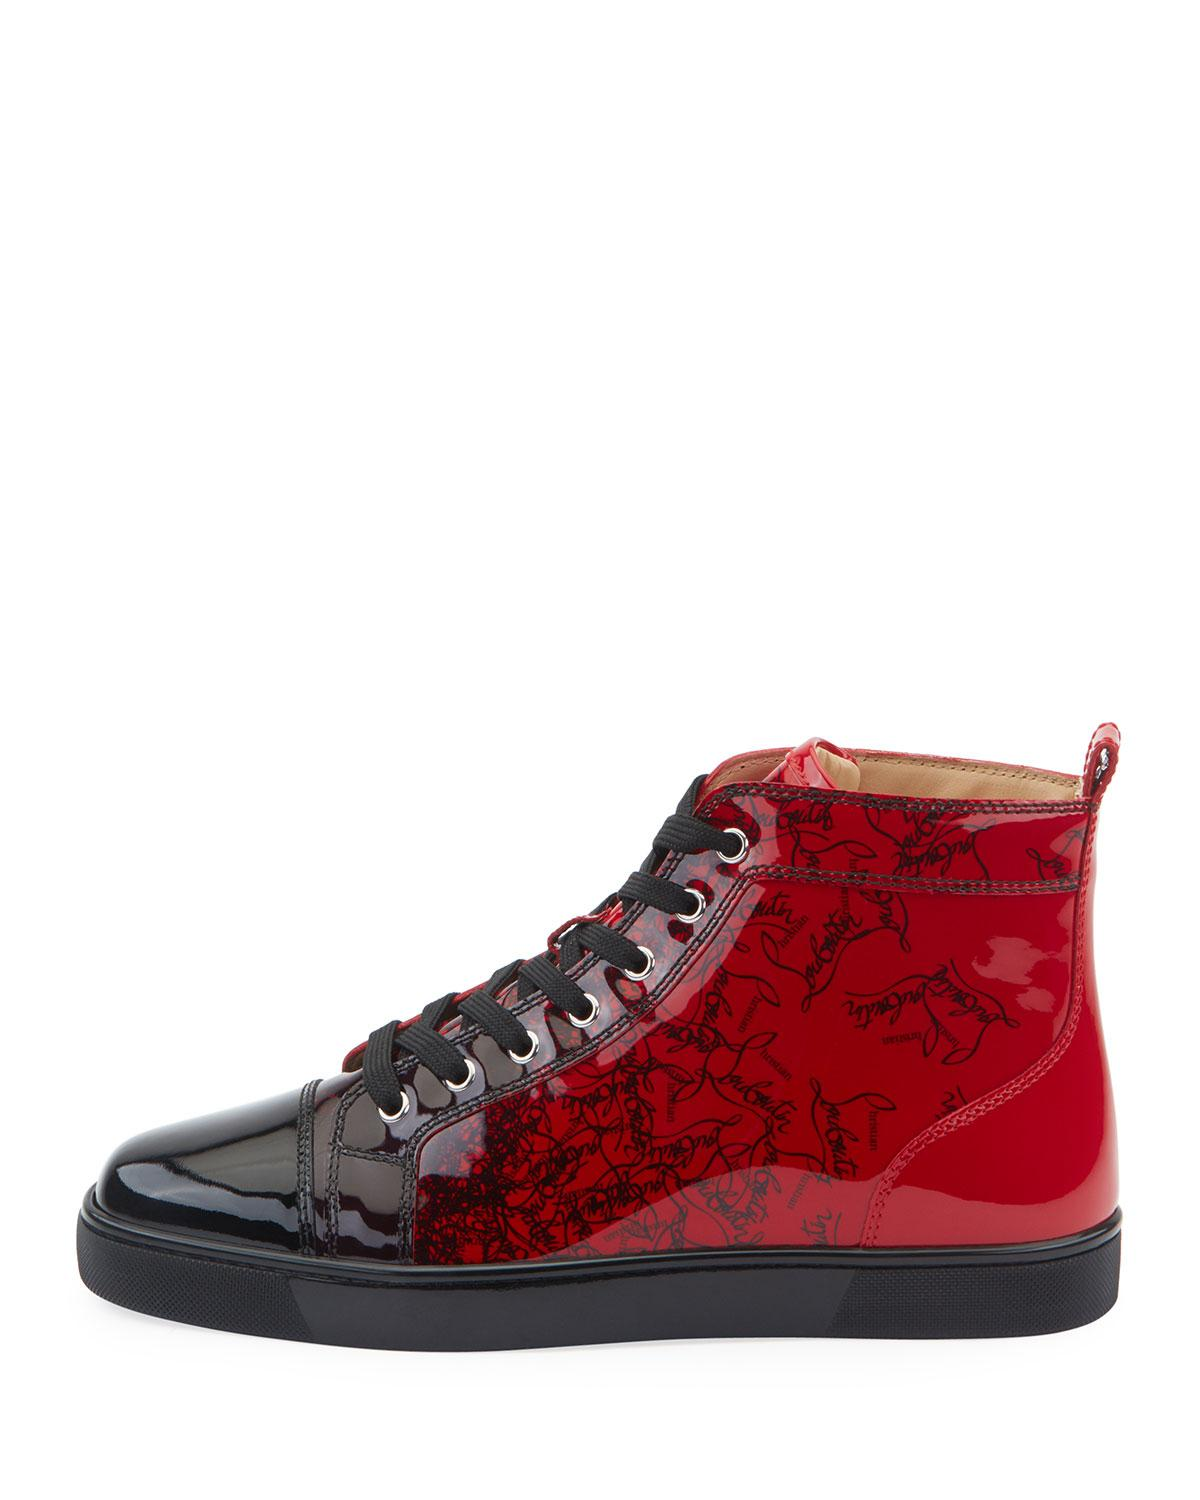 b09287ae7116e Lyst - Christian Louboutin Men s Louis Ombre Patent Leather High-top  Sneakers in Black